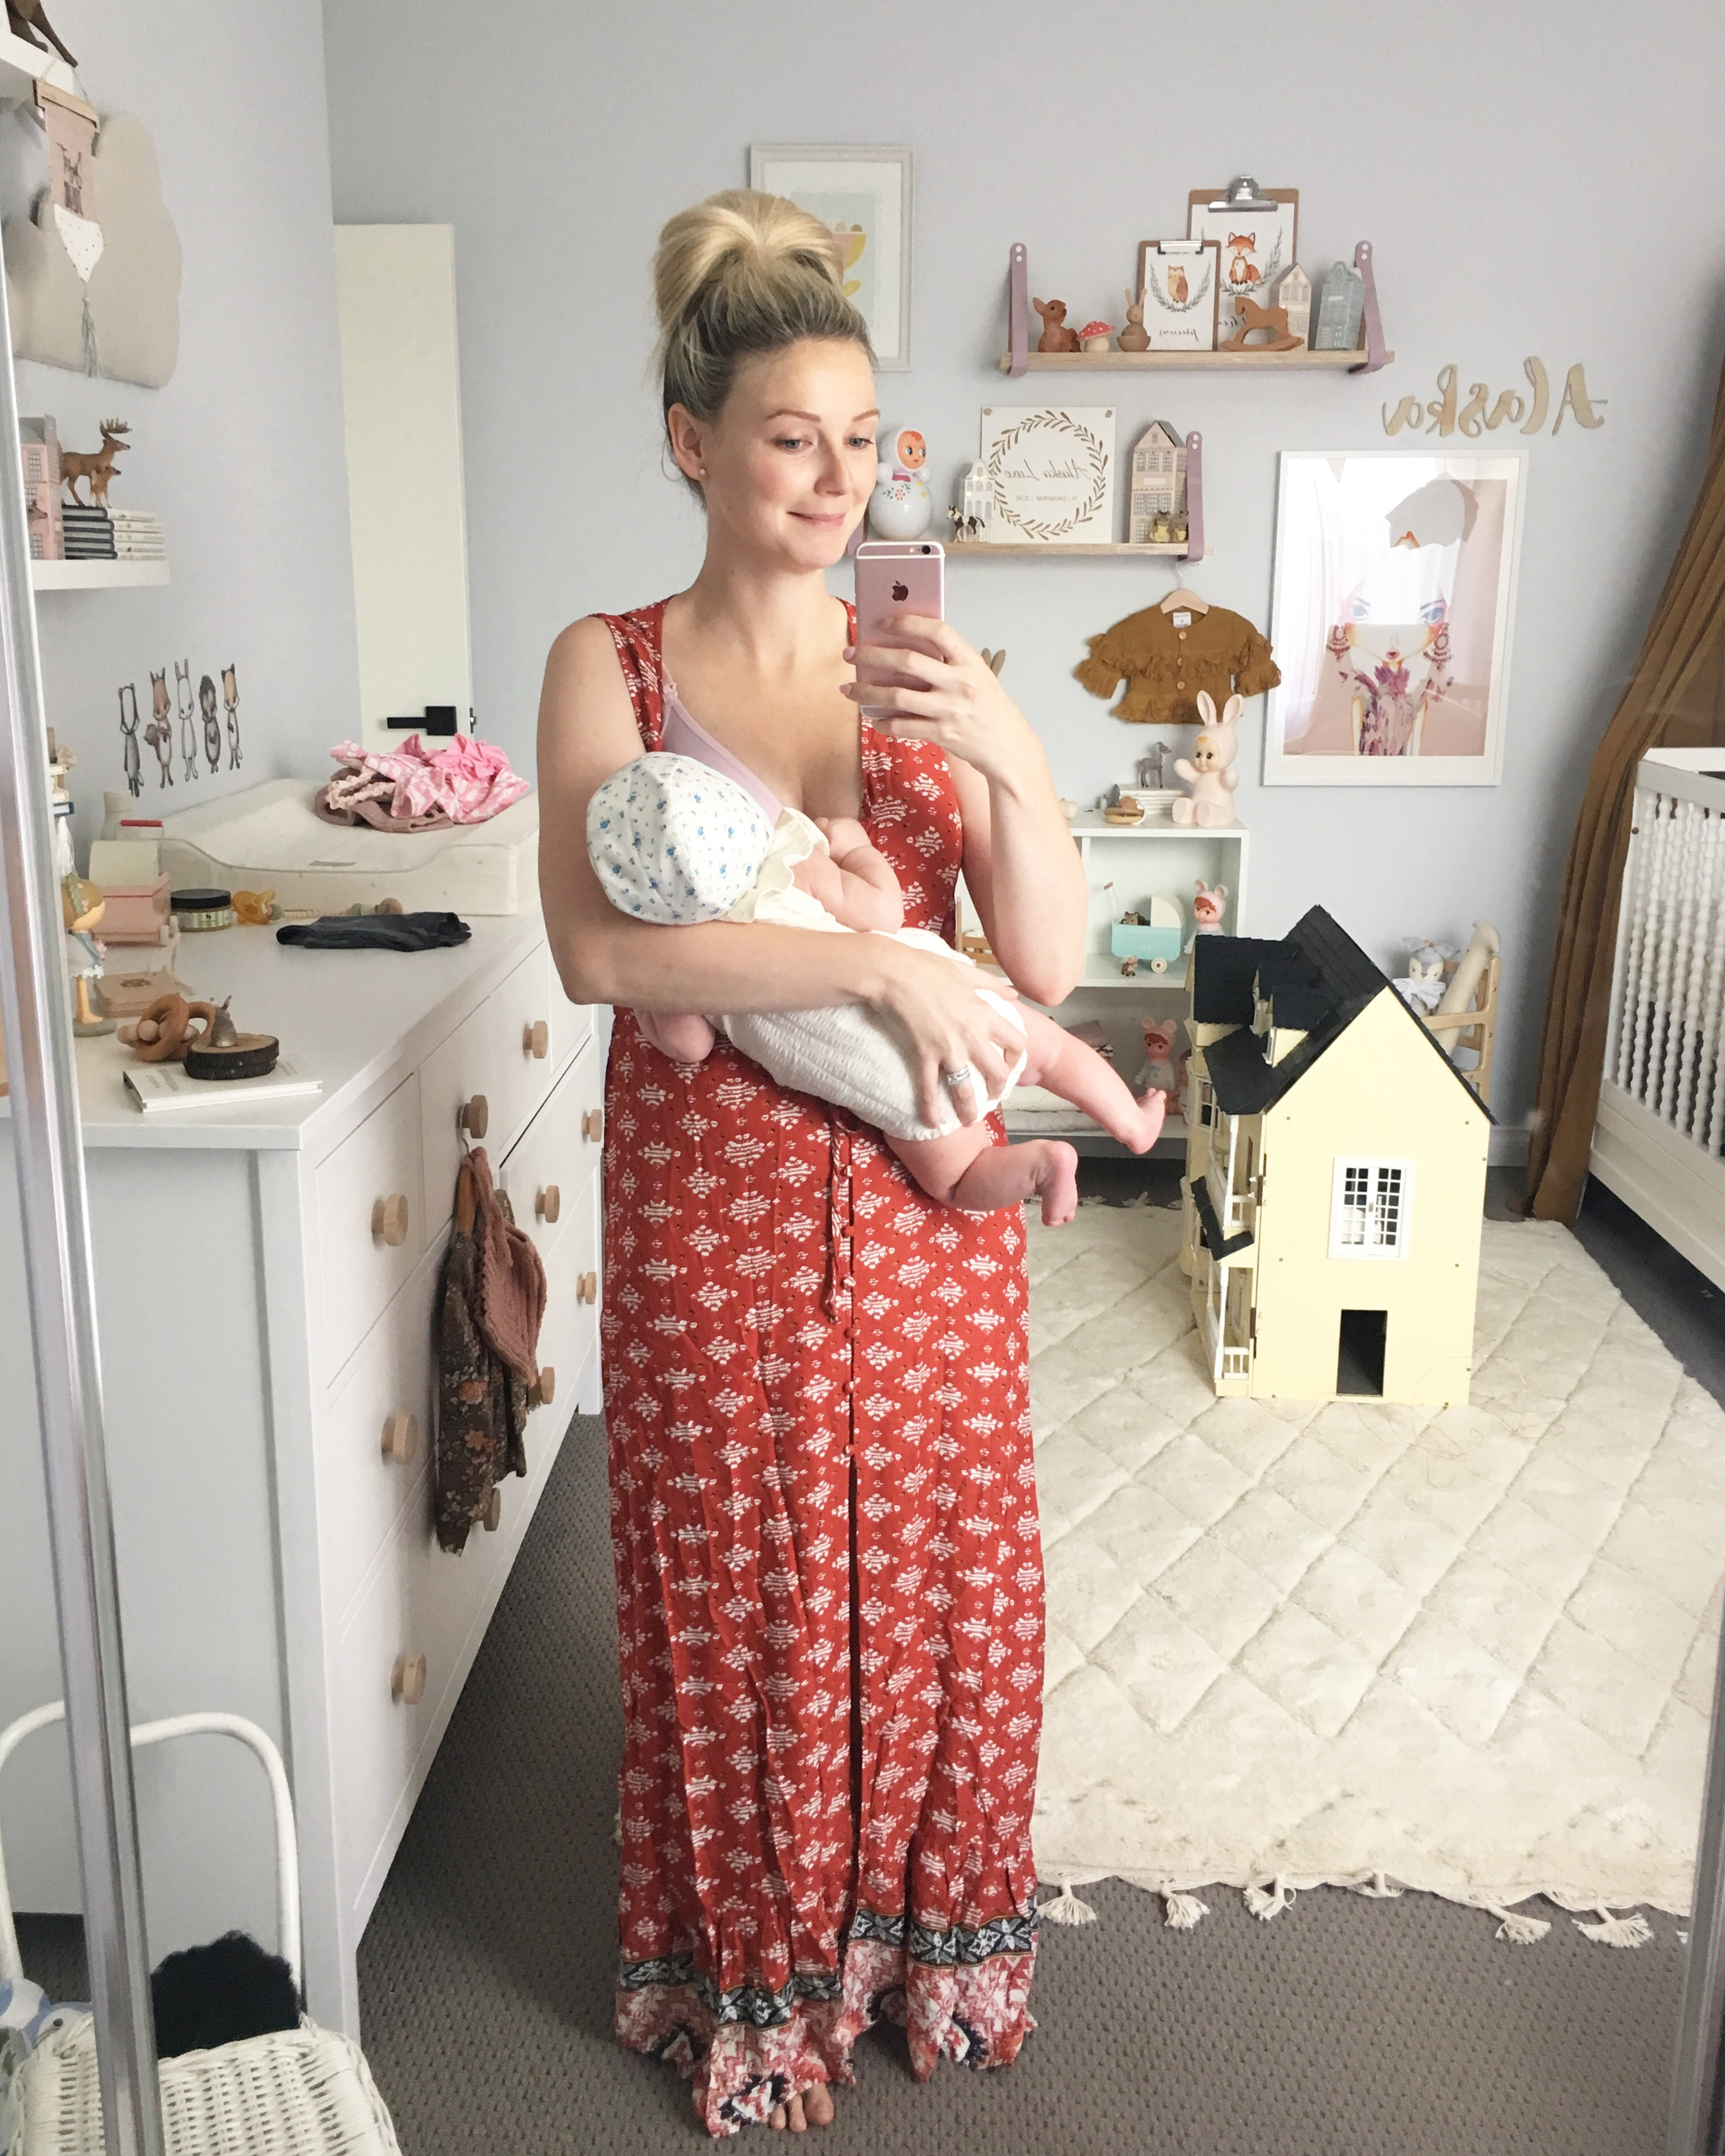 b00c8441f72f4 The Self Styler: Fawn Wrap Dress $89 Shop Here. Wrap around style is very  on trend right now which is SUPER awesome for us boobie feeding mamas!